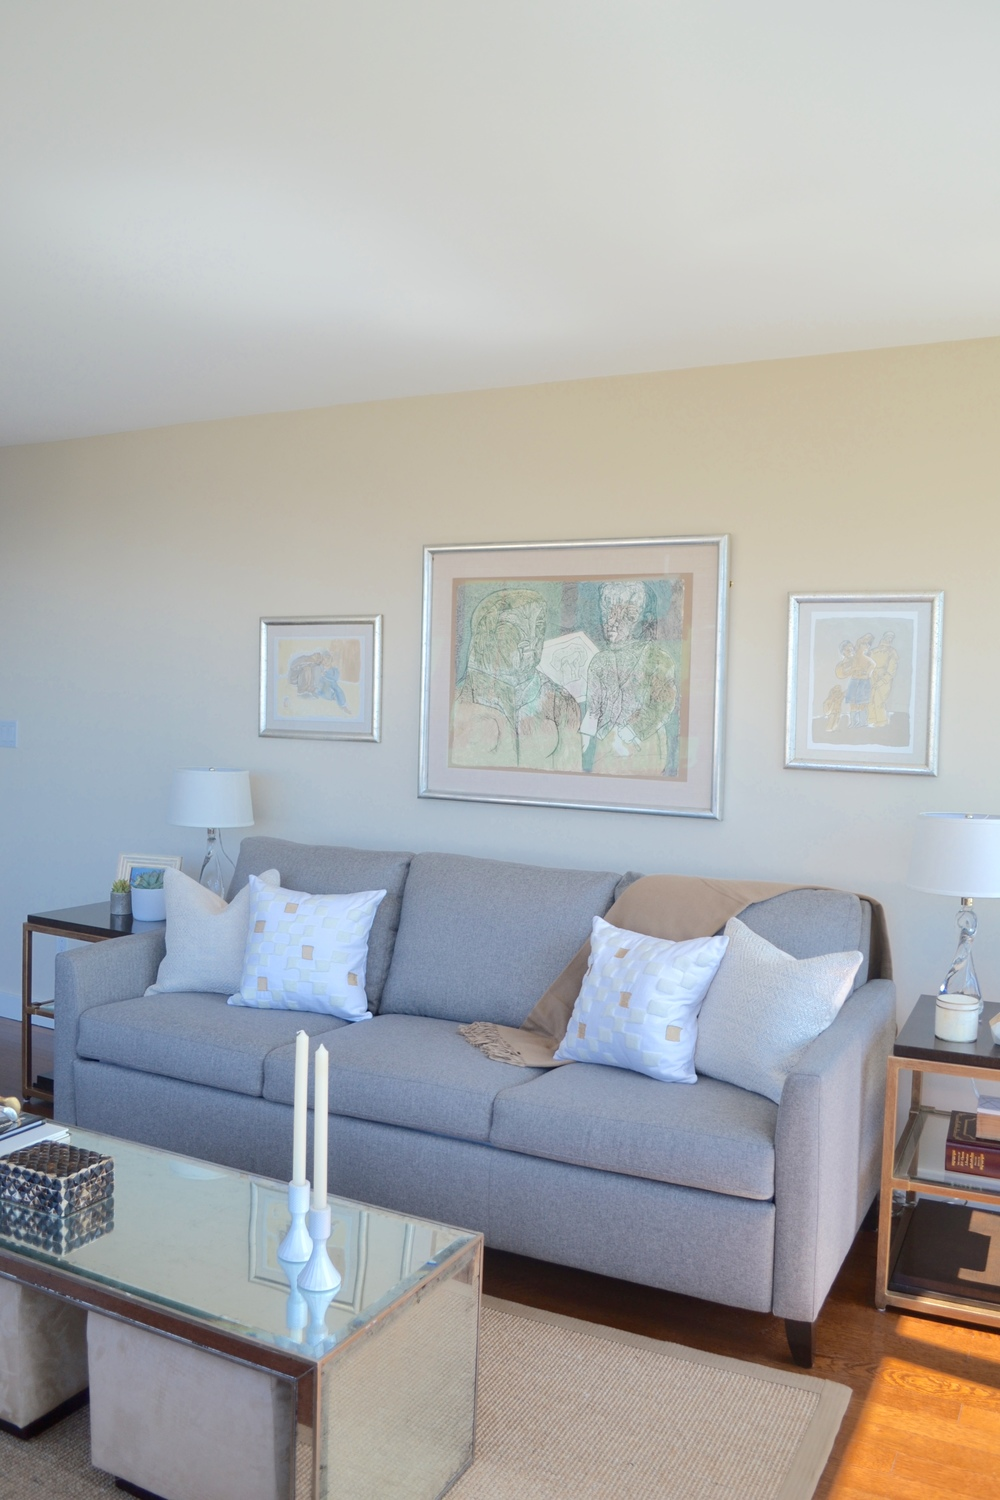 I'm in love with the client's original art (by a famous Mexican artist whose name escapes me at the moment!). It happened to blend perfectly with our scheme of warm beiges and grays and fit perfectly as a gallery installation over the sofa.